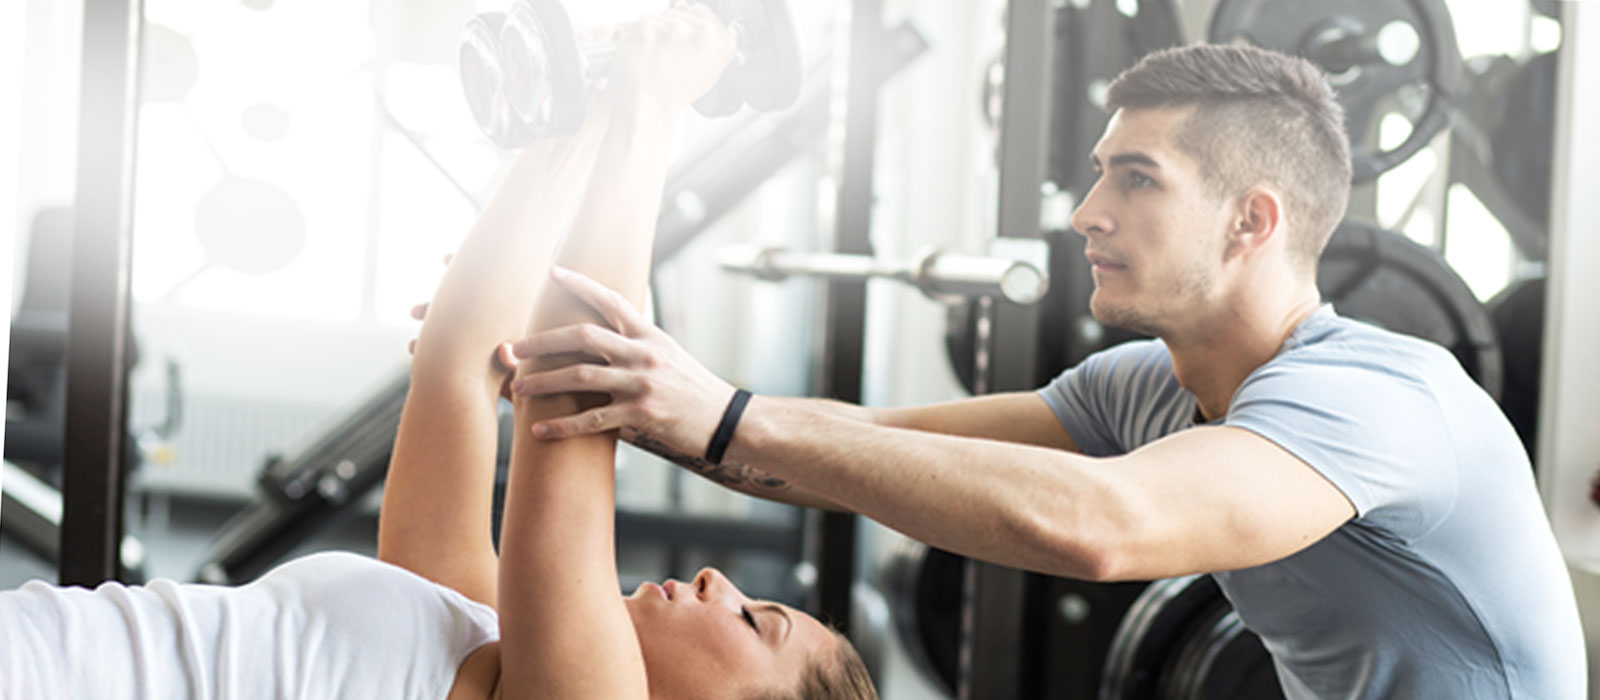 personal trainer in Cincinnati assisting gym member with proper body mechanics during workout